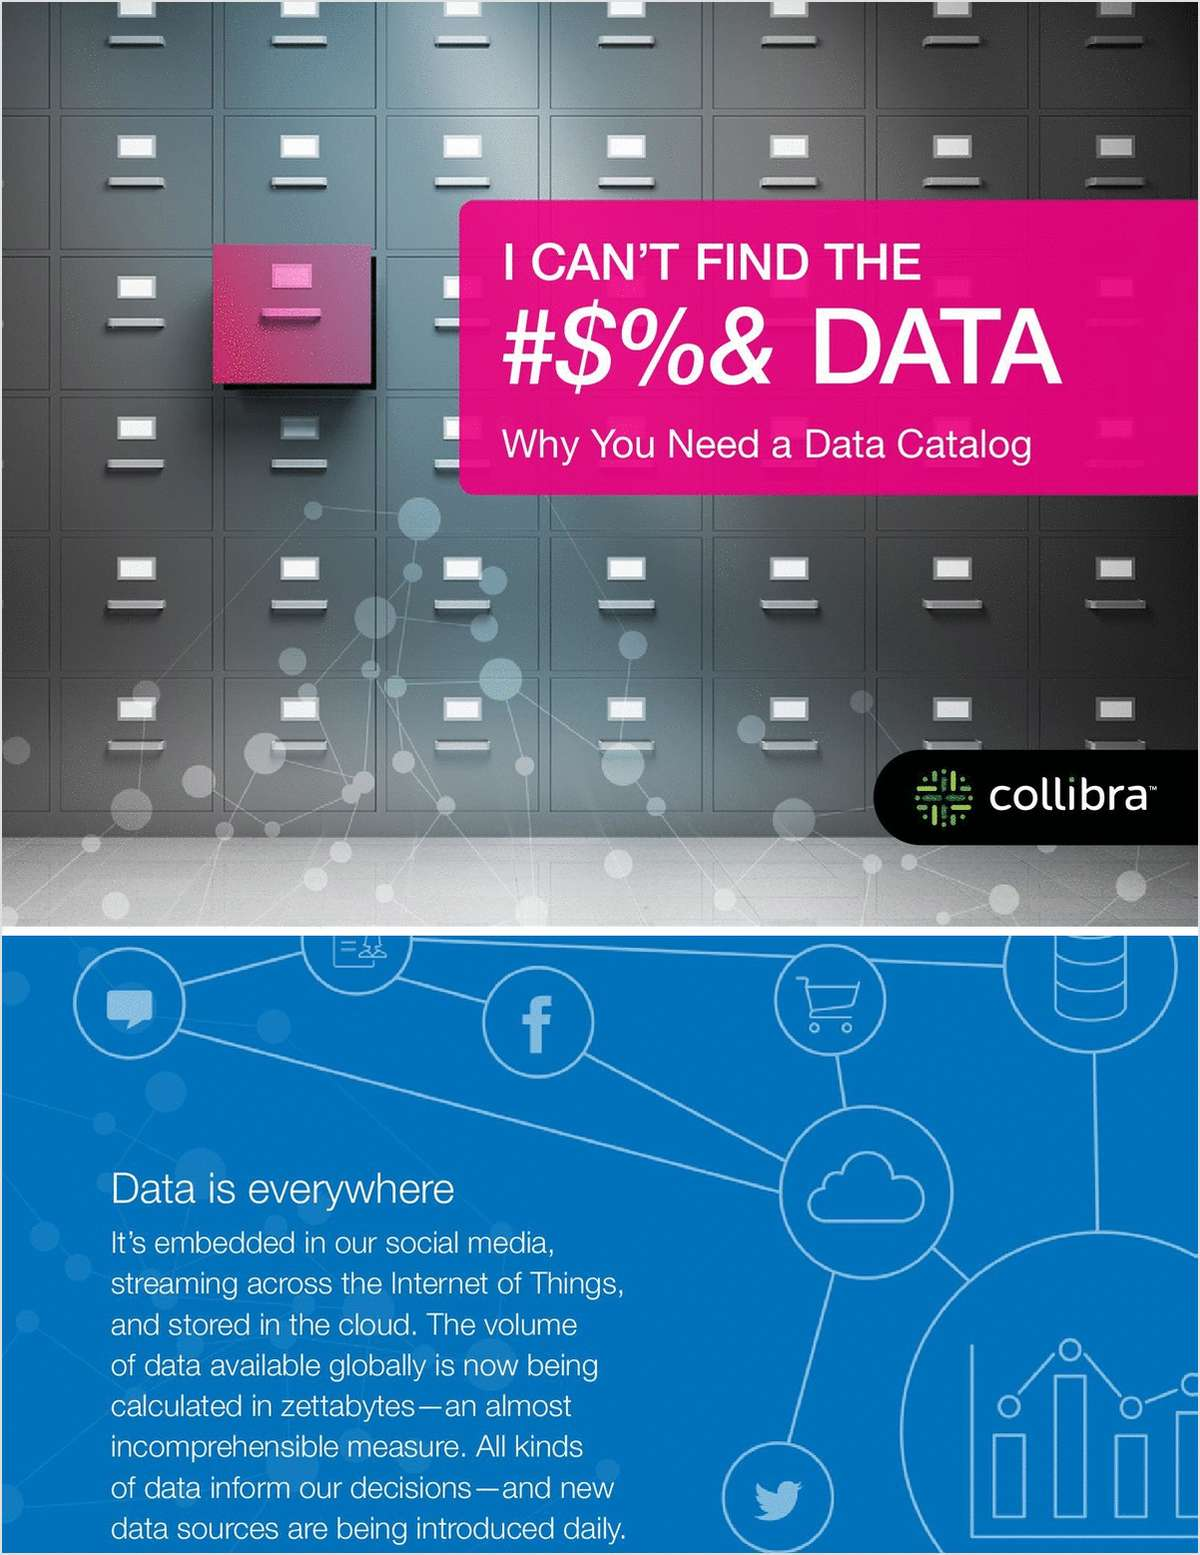 I Can't Find the #$%& Data: Why You Need a Data Catalog